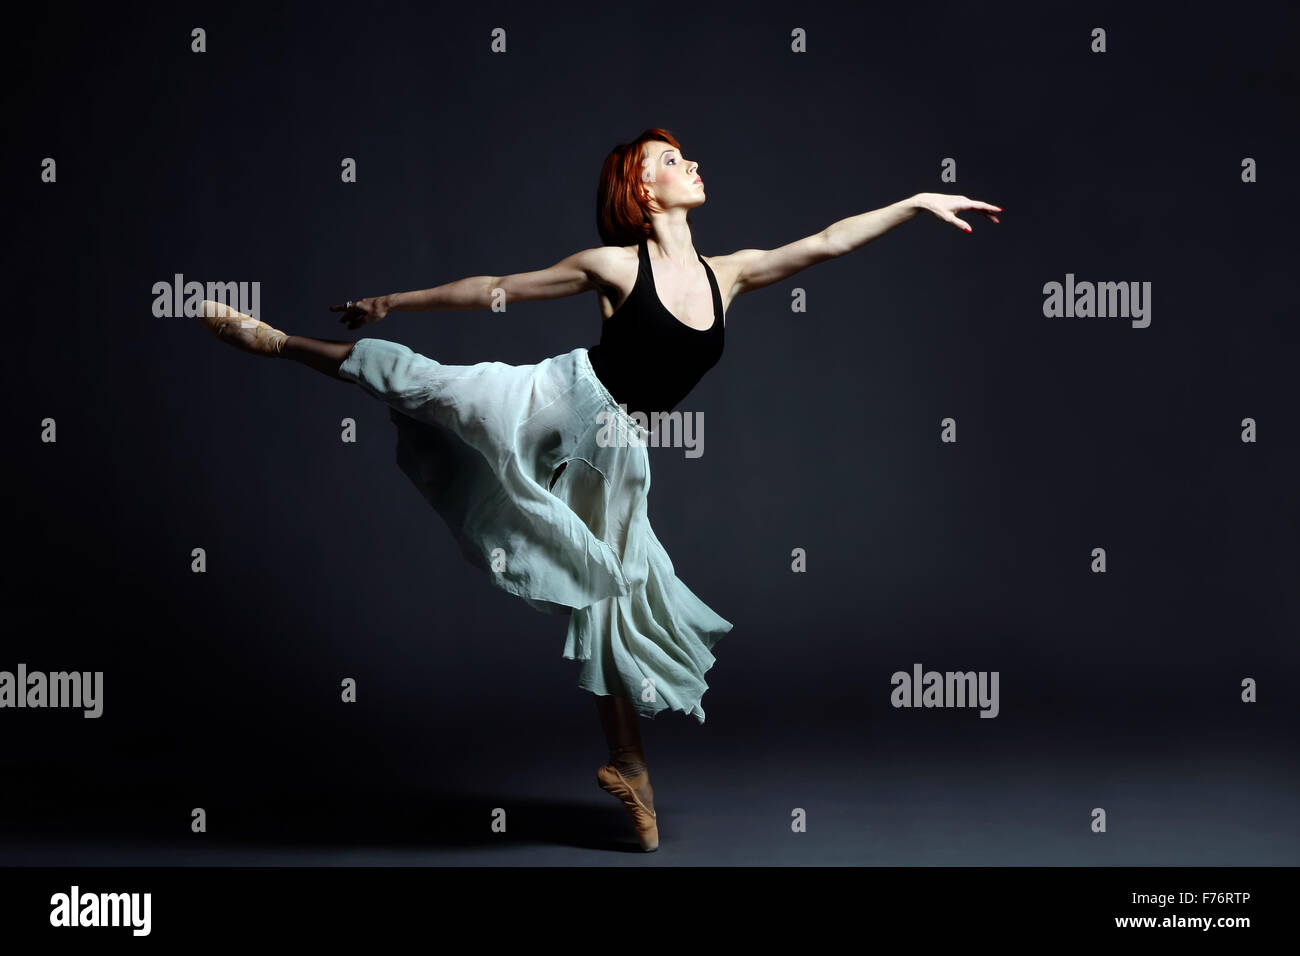 Ballet dancer performing on stage - Stock Image